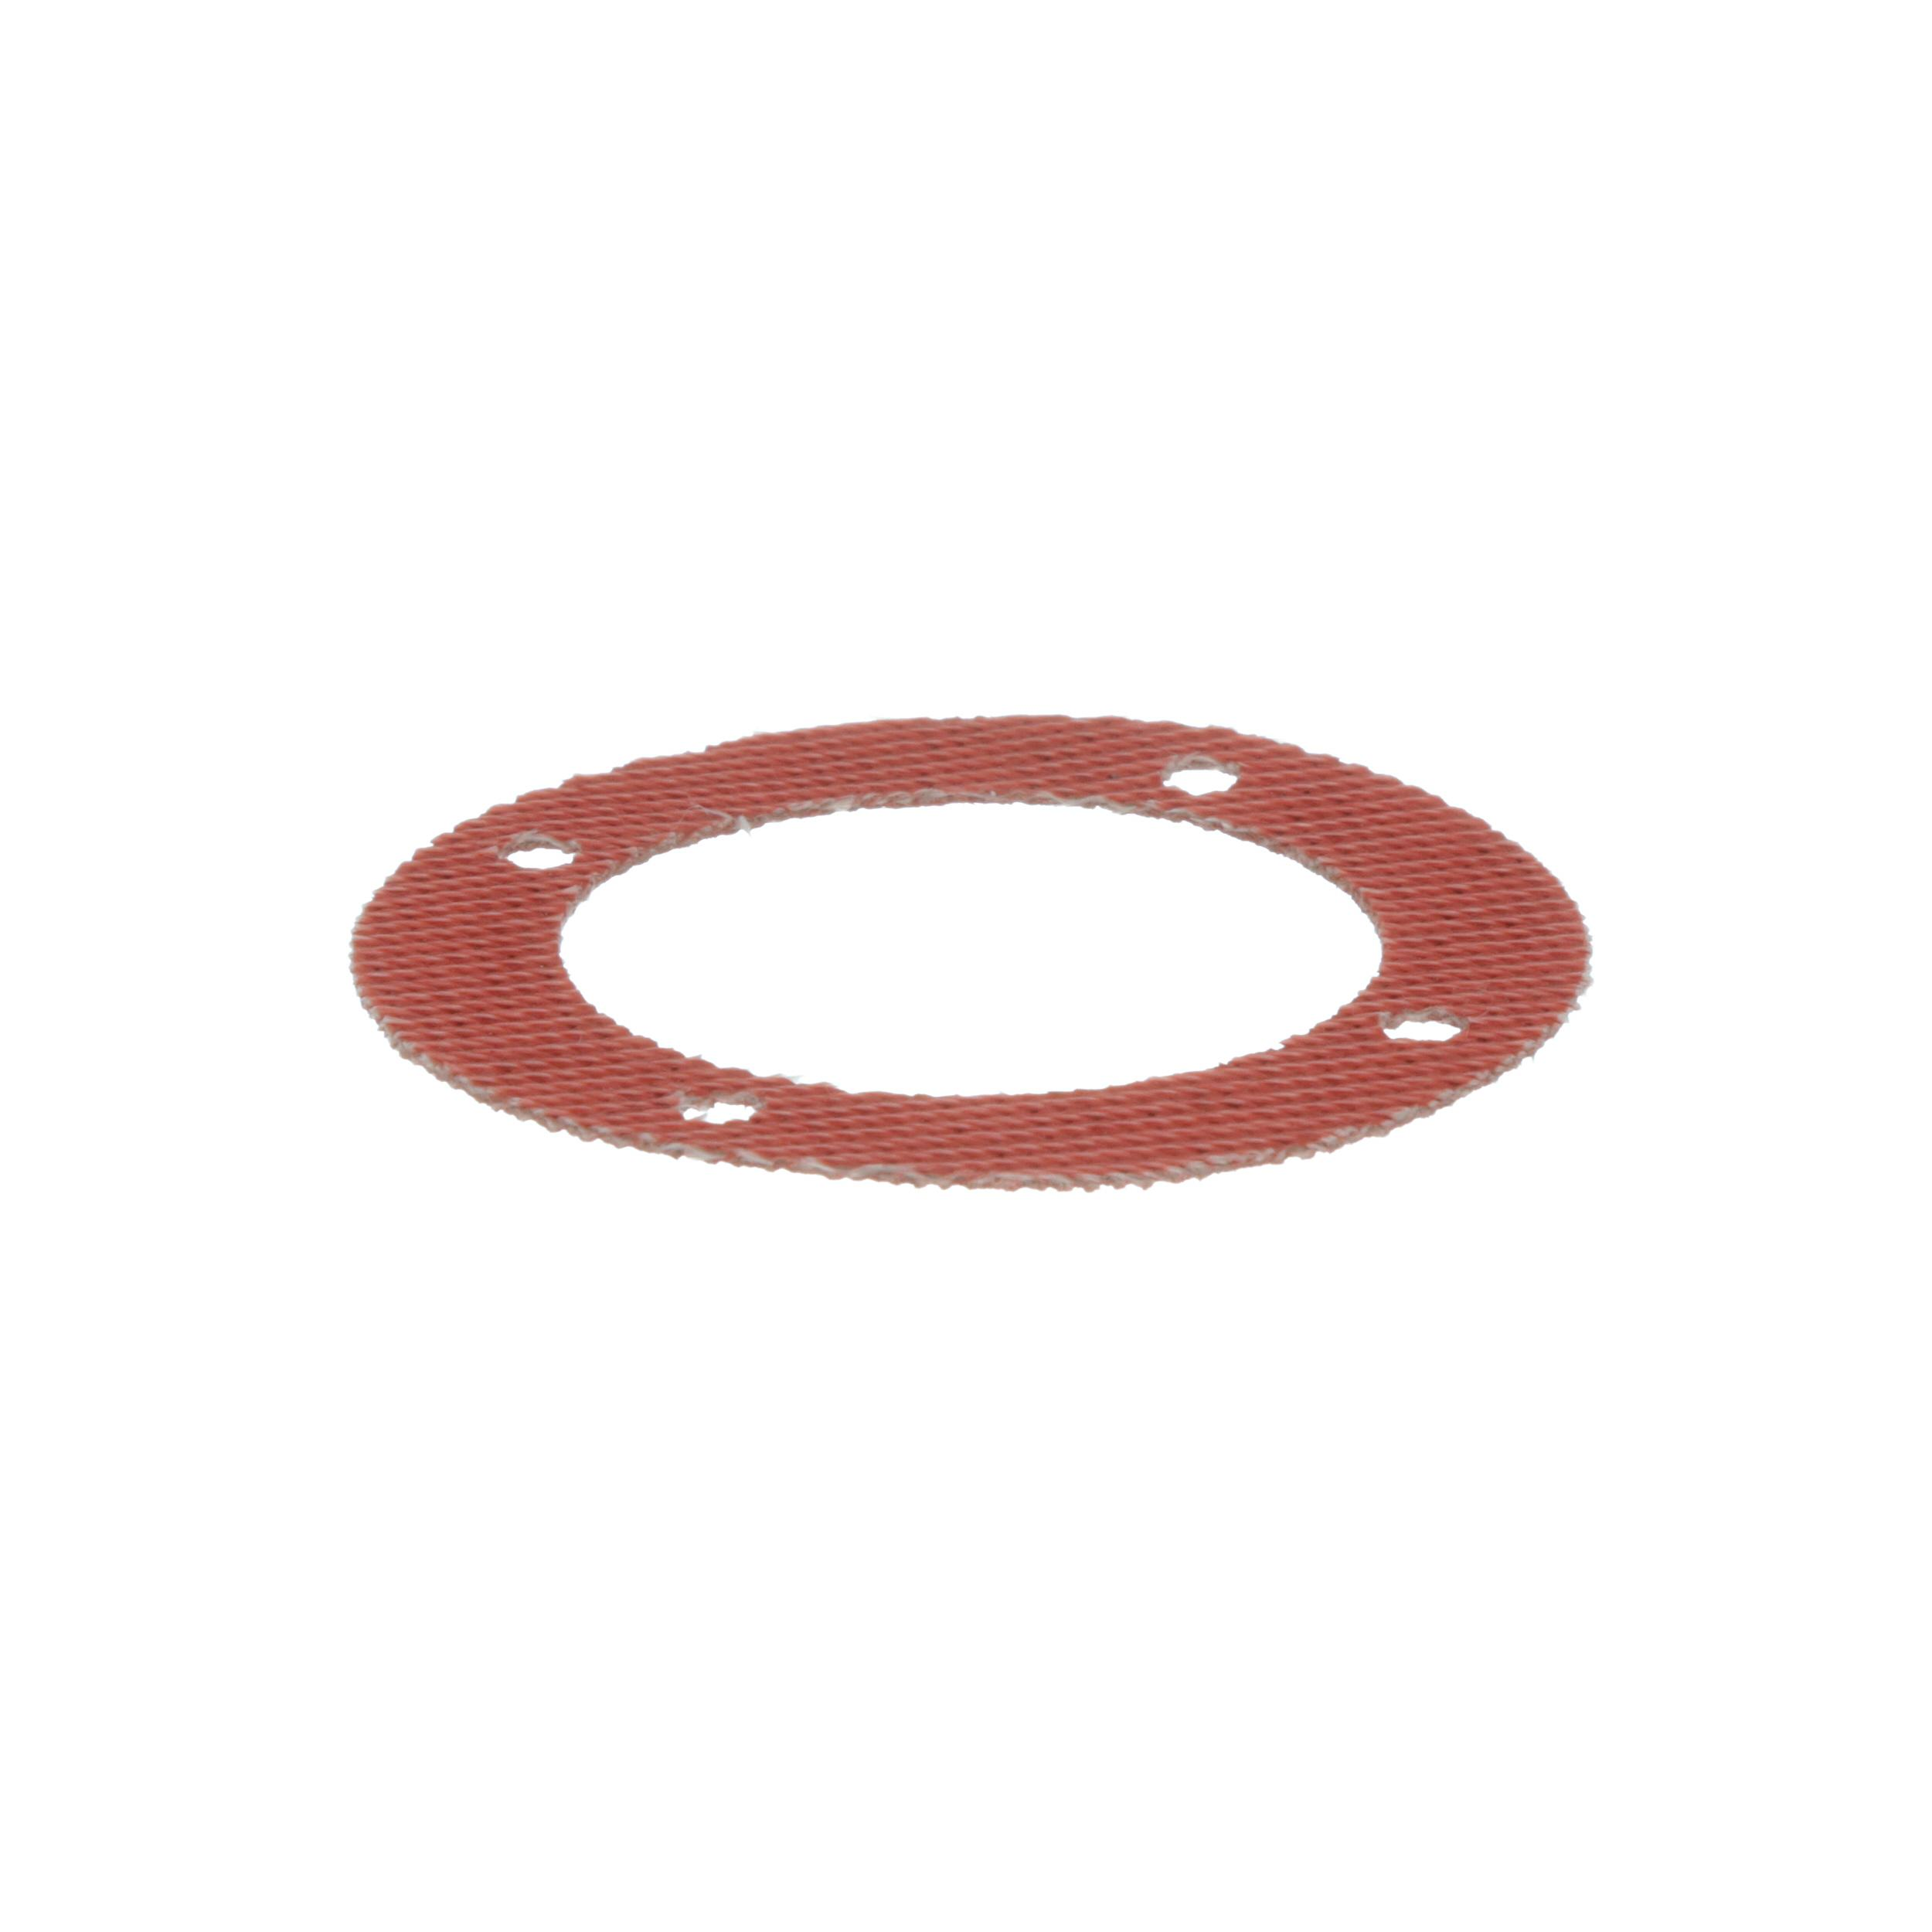 ELECTROLUX LAMP HOLDER GASKET